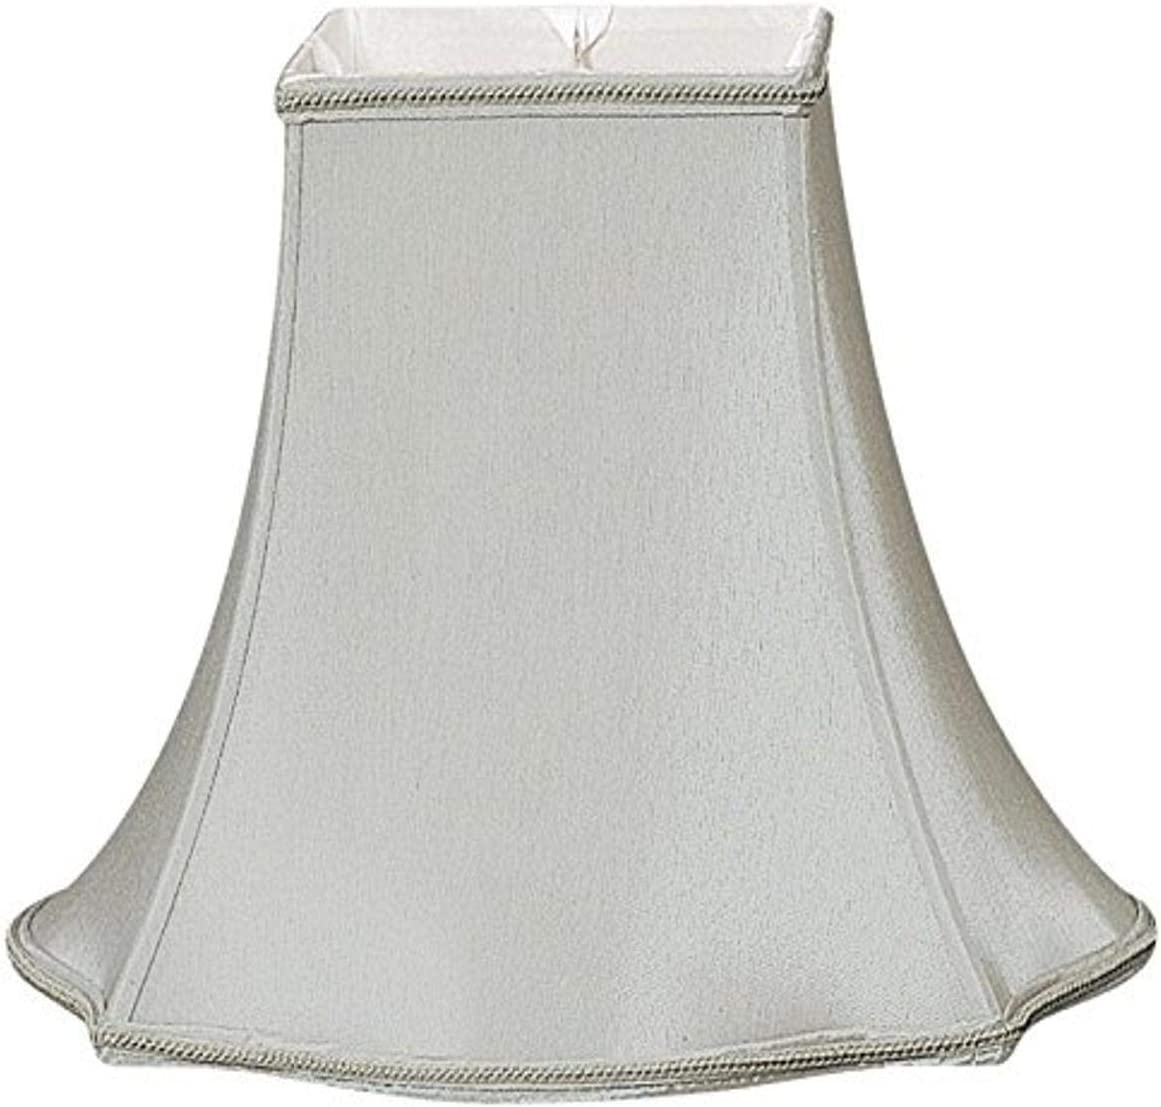 Royal Designs Fancy Square Designer Lamp Shade, Gray, 7 x 16 x 12.75